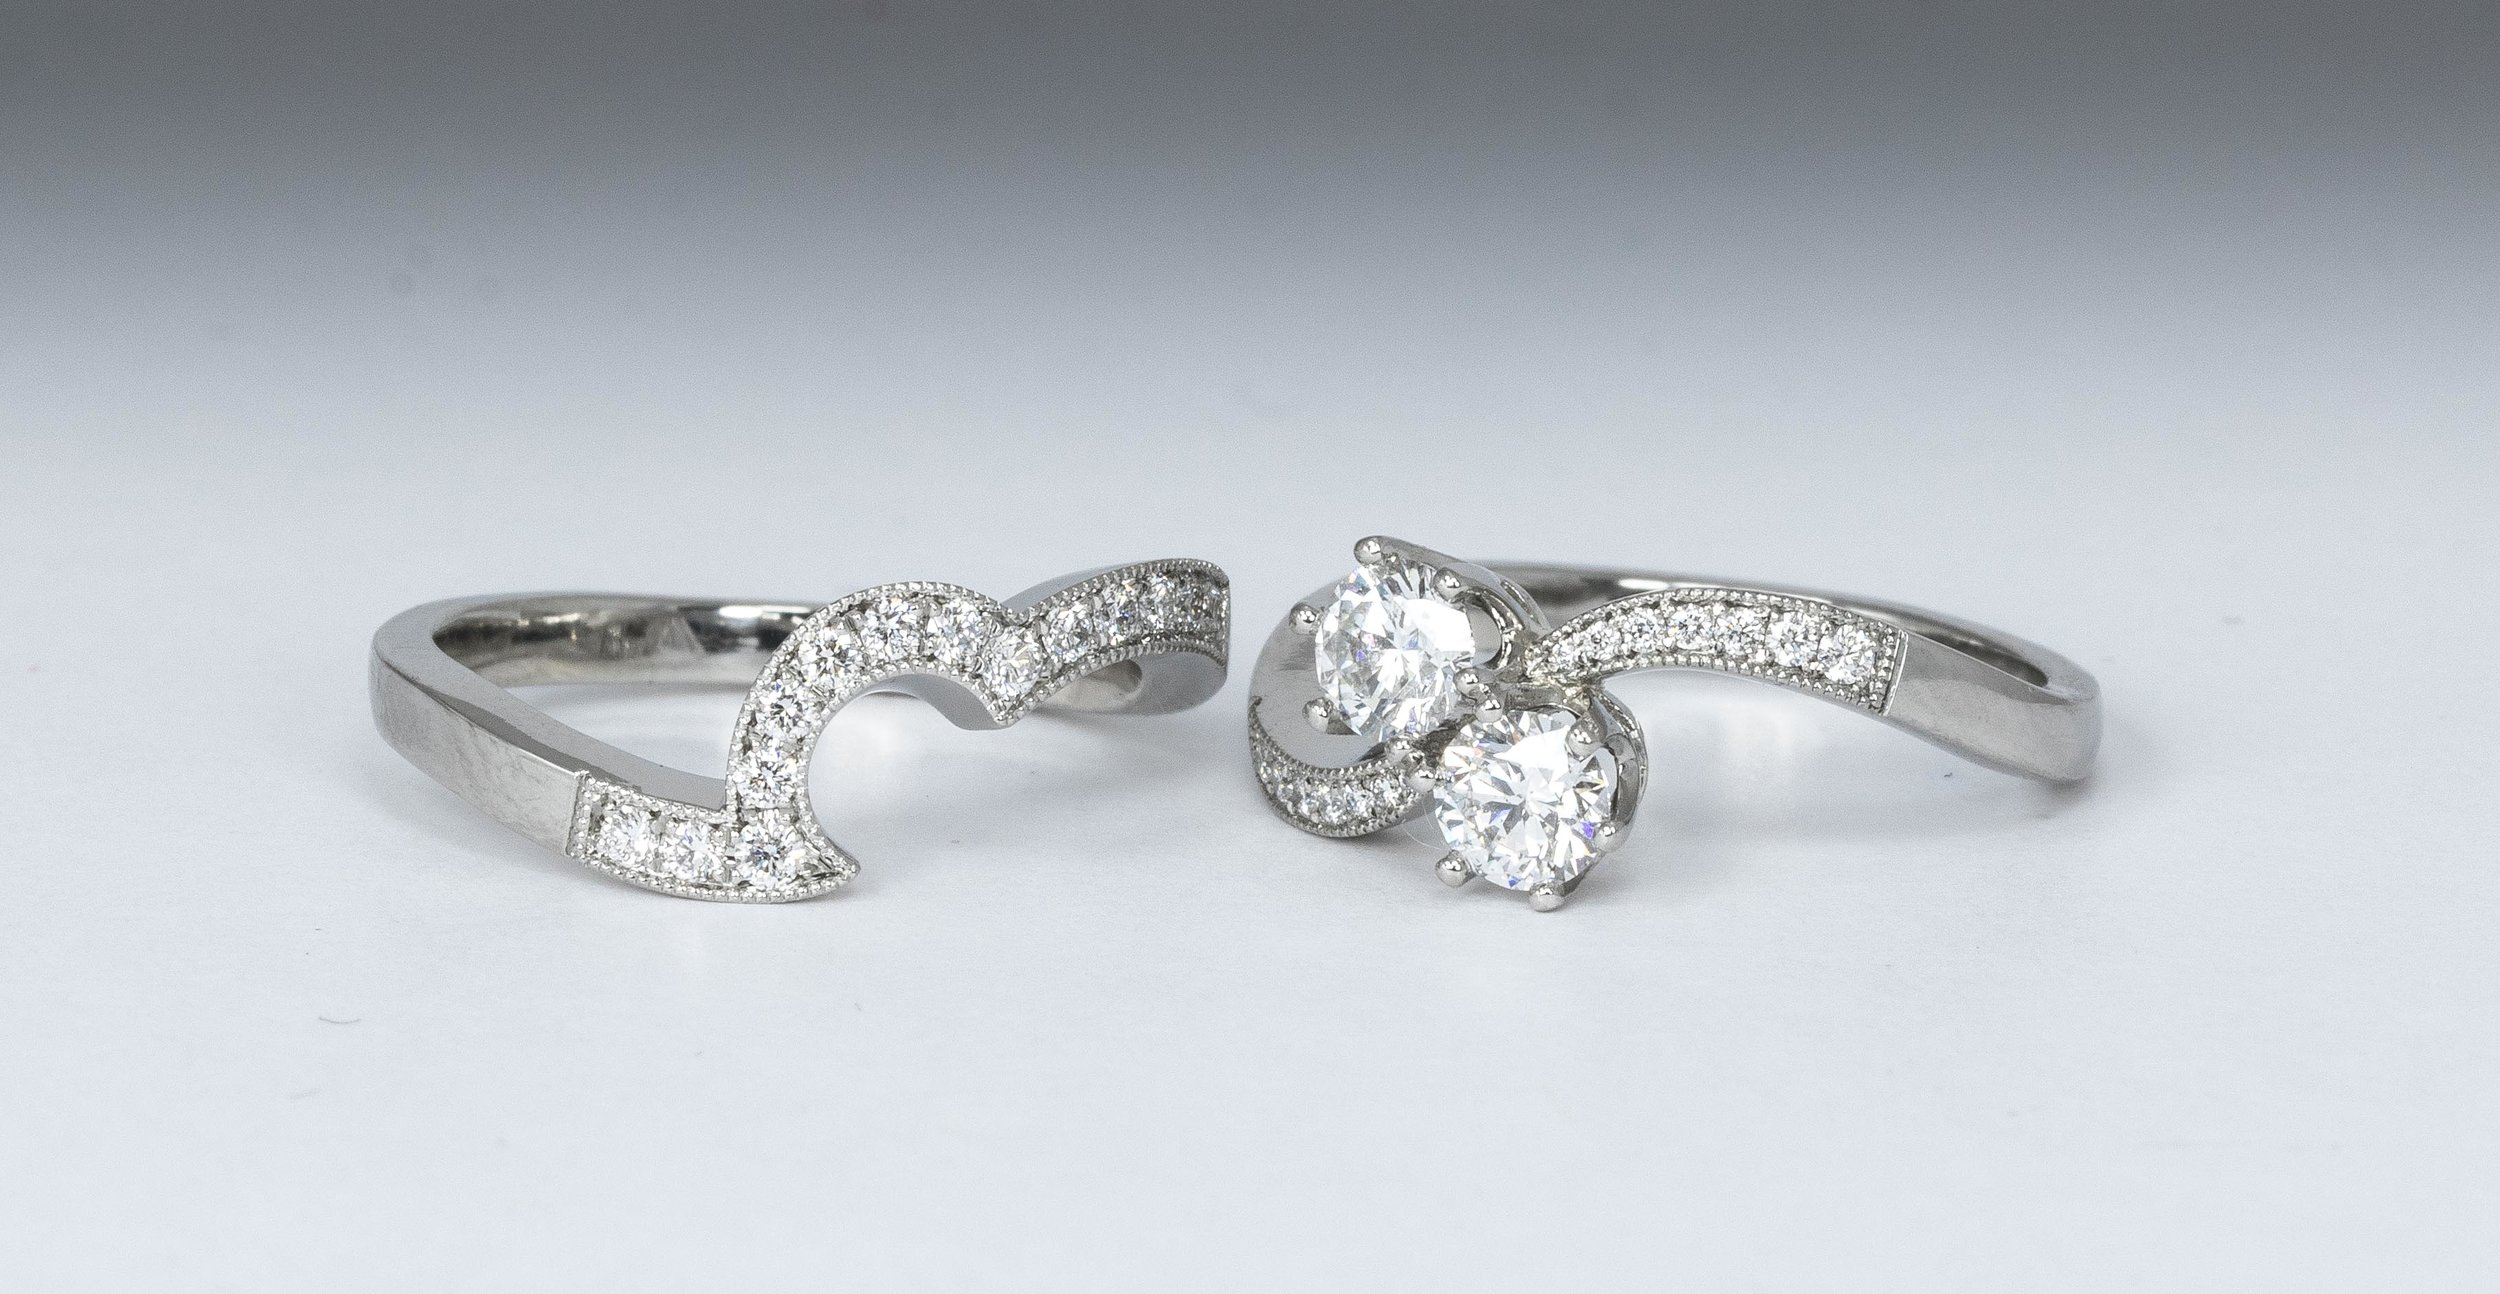 Platinum mounted two stone diamond twist with shaped diamond set band. Made in Chichester, England.   Click here   to see a 10 minute video on marking out positions, preparation and setting the diamonds in the shaped band.